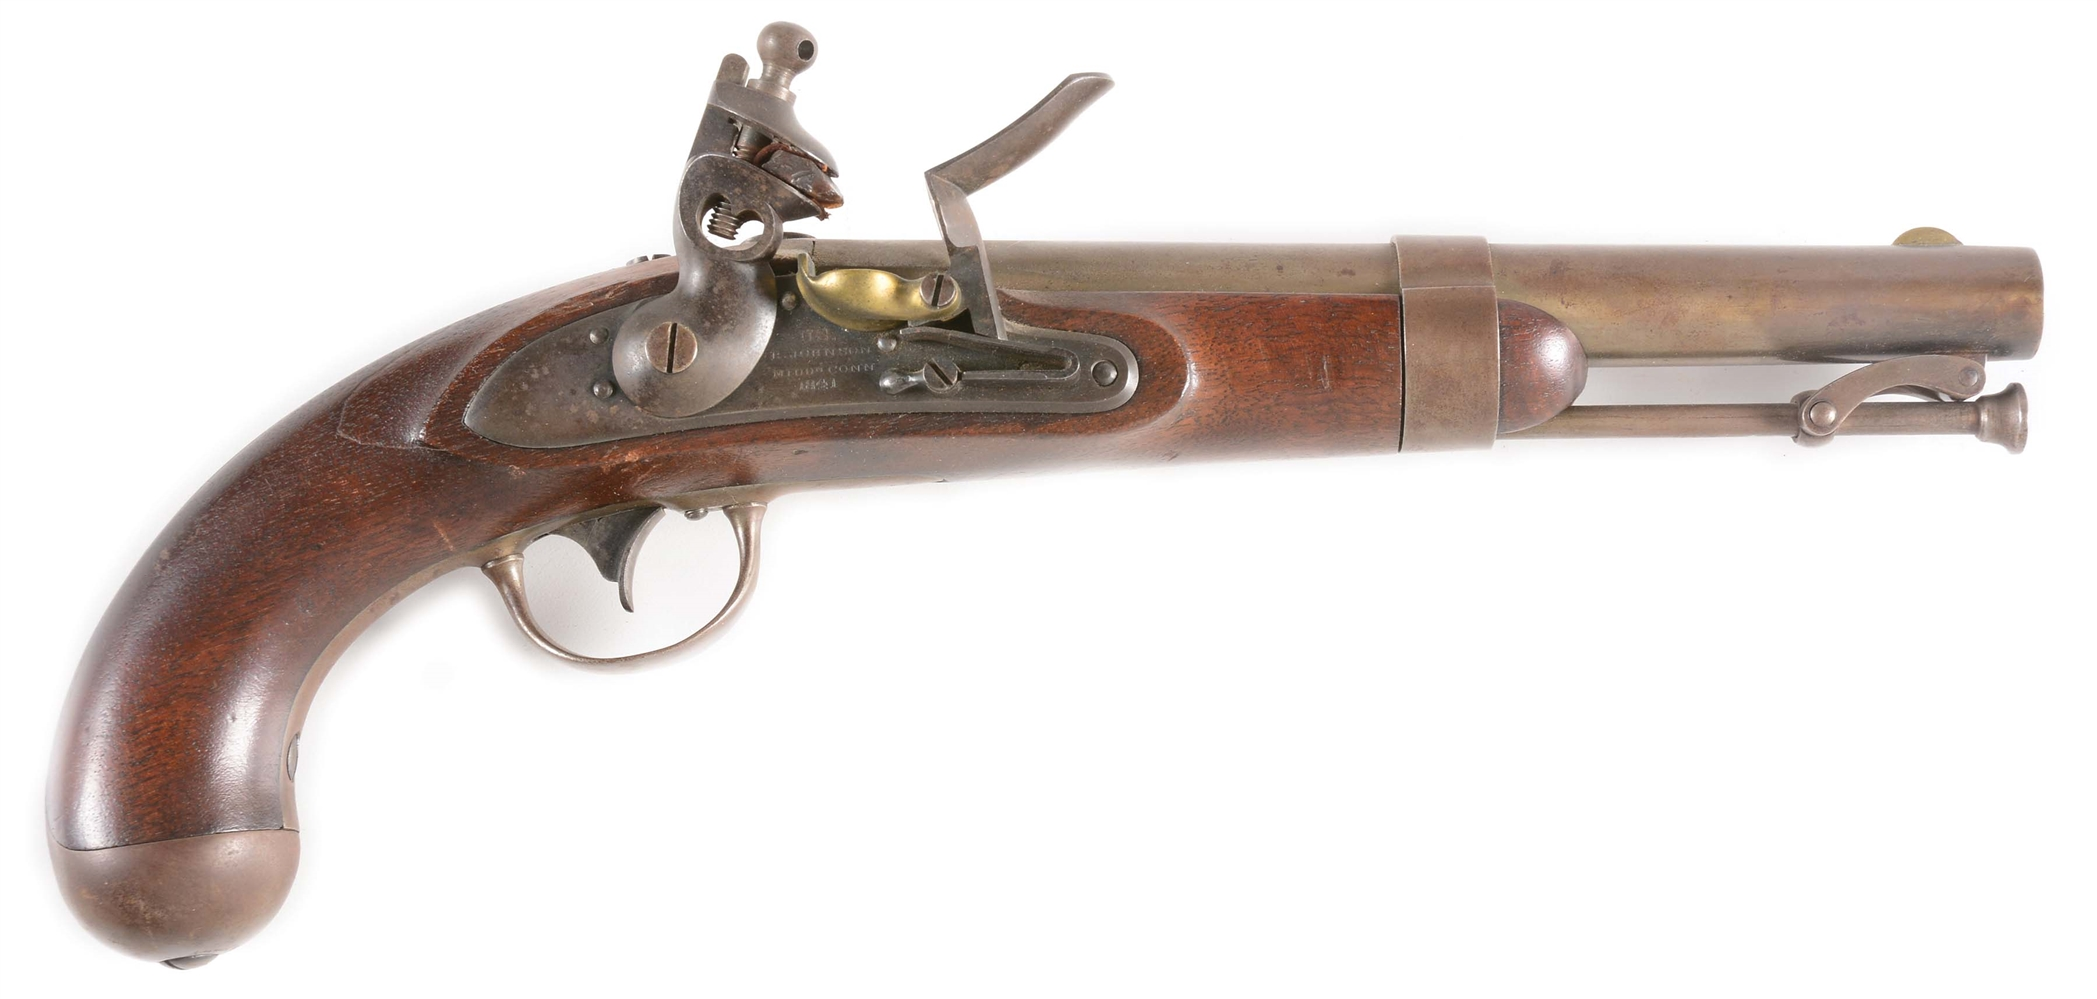 (A) GOOD MODEL 1836 US FLINTLOCK MARTIAL PISTOL BY R. JOHNSON DATED 1841, IN UNTOUCHED ORIGINAL CONDITION THROUGHOUT.